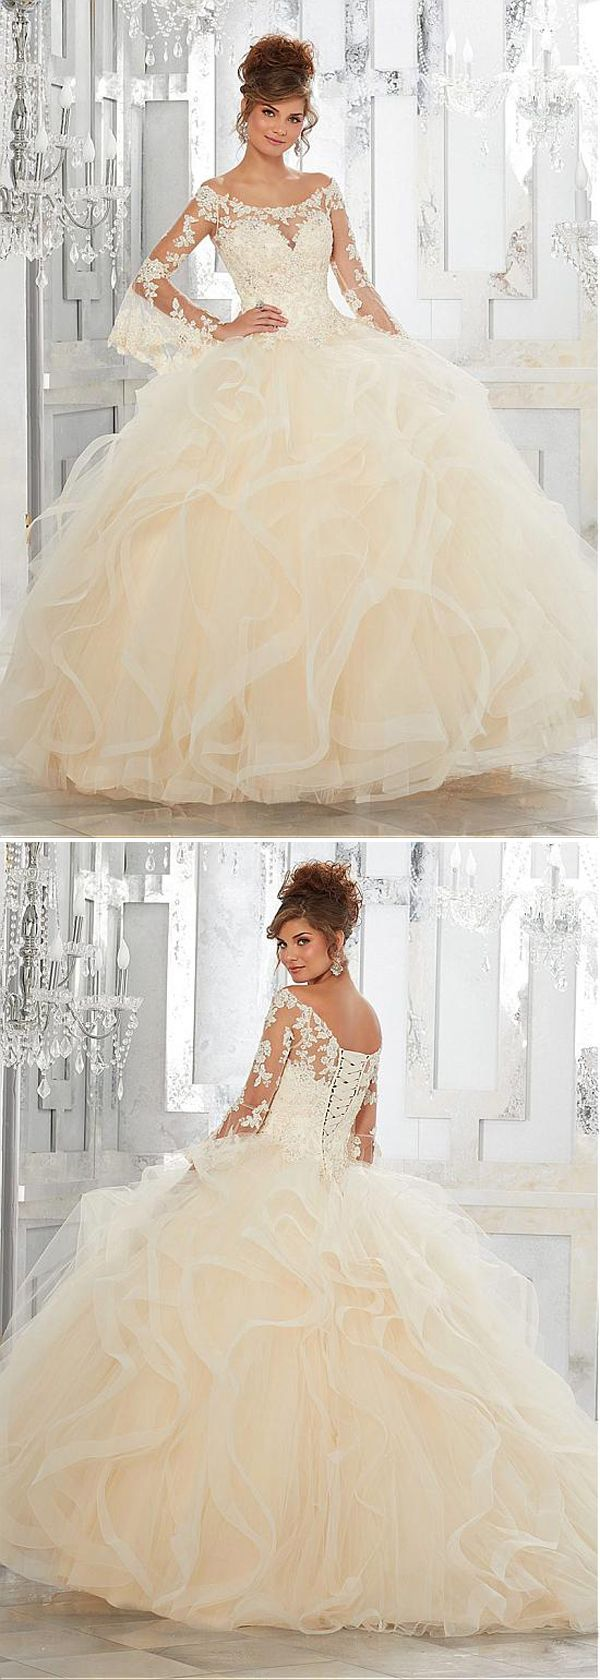 Elegant Tulle Off-the-shoulder Neckline Ball Gown Quinceanera Dresses With Beaded Lace Appliques